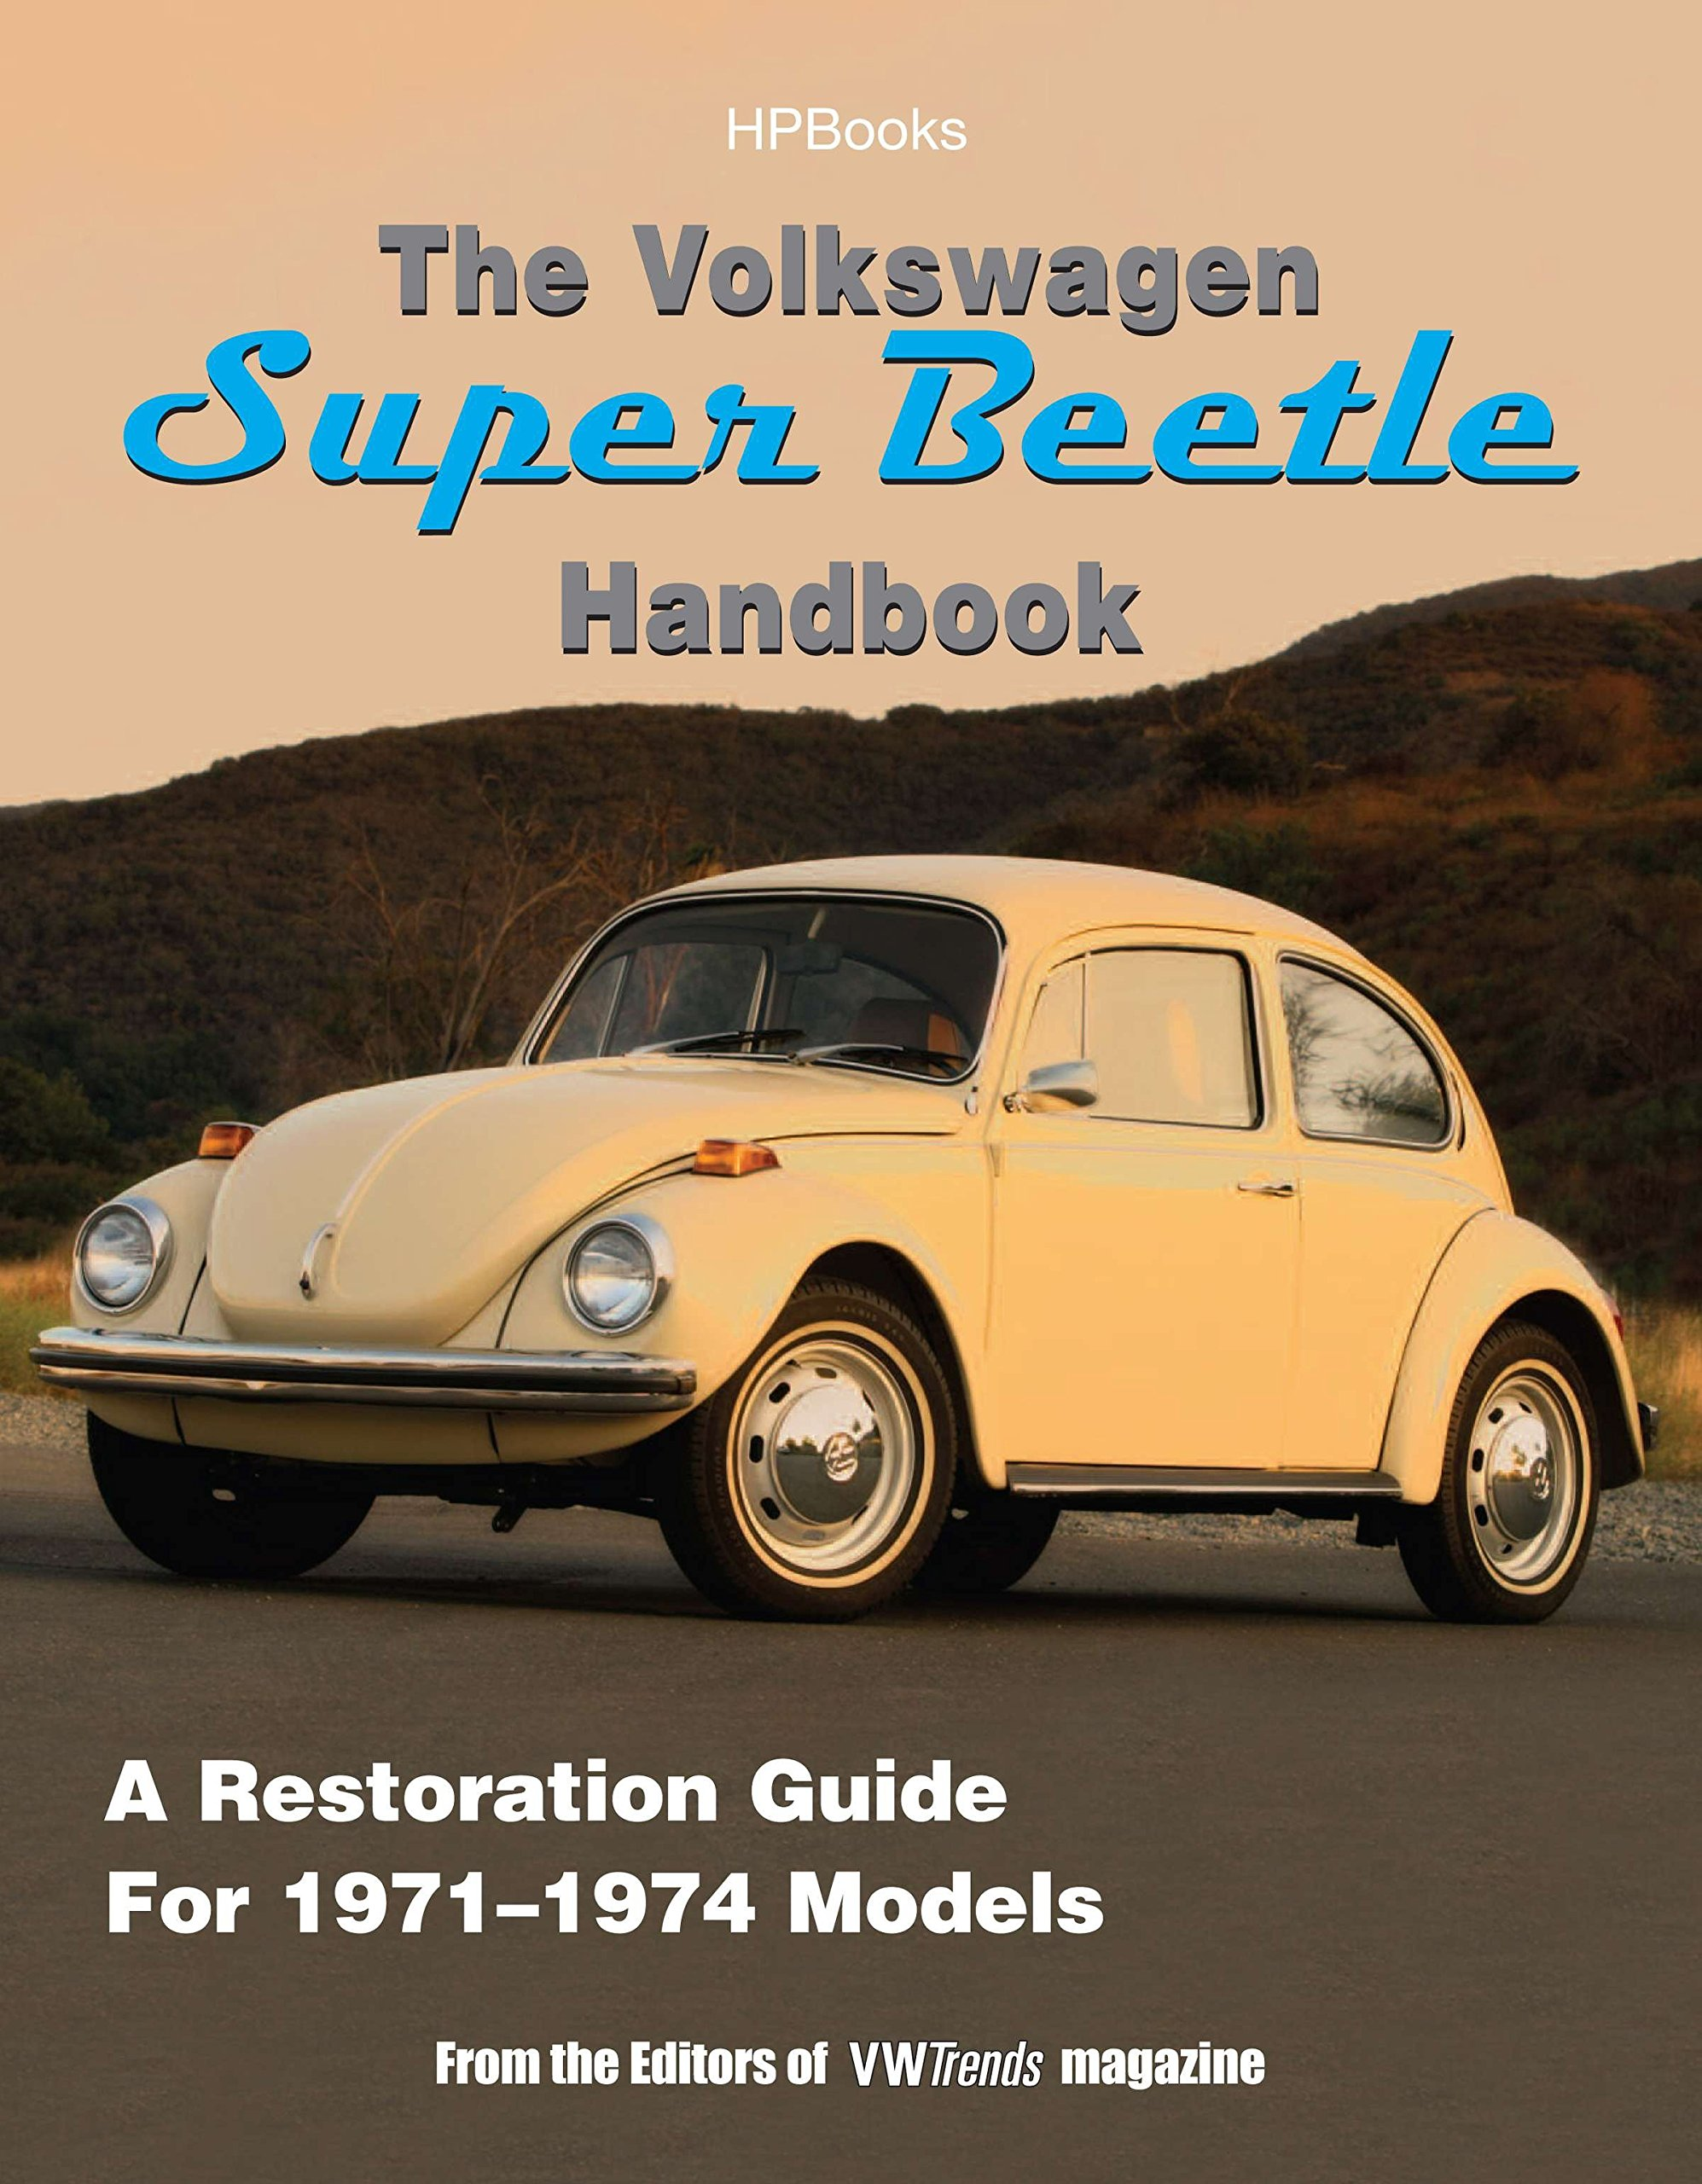 The Volkswagen Super Beetle Handbook HP1483: A Restoration Guide For 1971- 1974 Models: Editors of VW Trends Magazine: 9781557884831: Amazon.com: Books